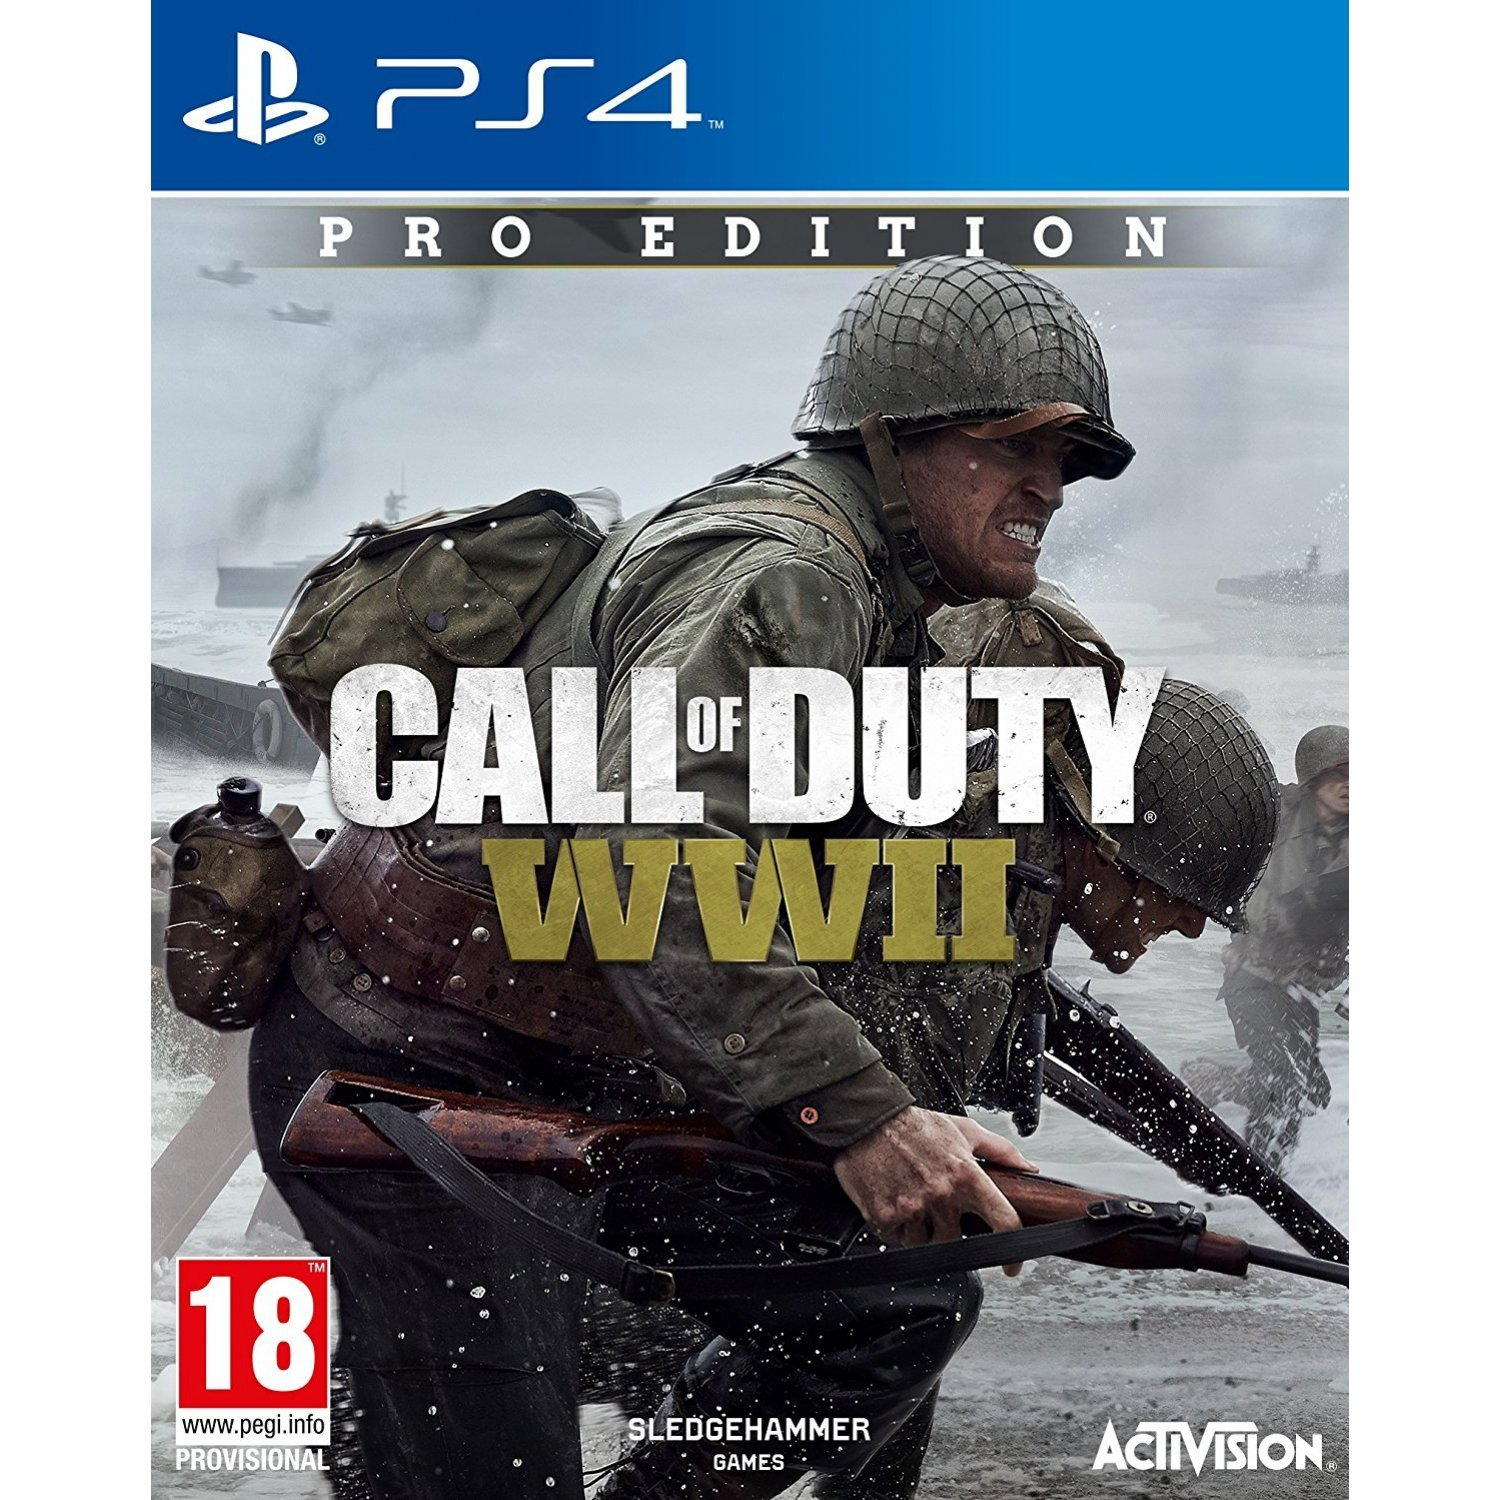 Call Of Duty Wwii Pro Edition Sony Playstation 4 Ps4 Cod Limited Non Dvd